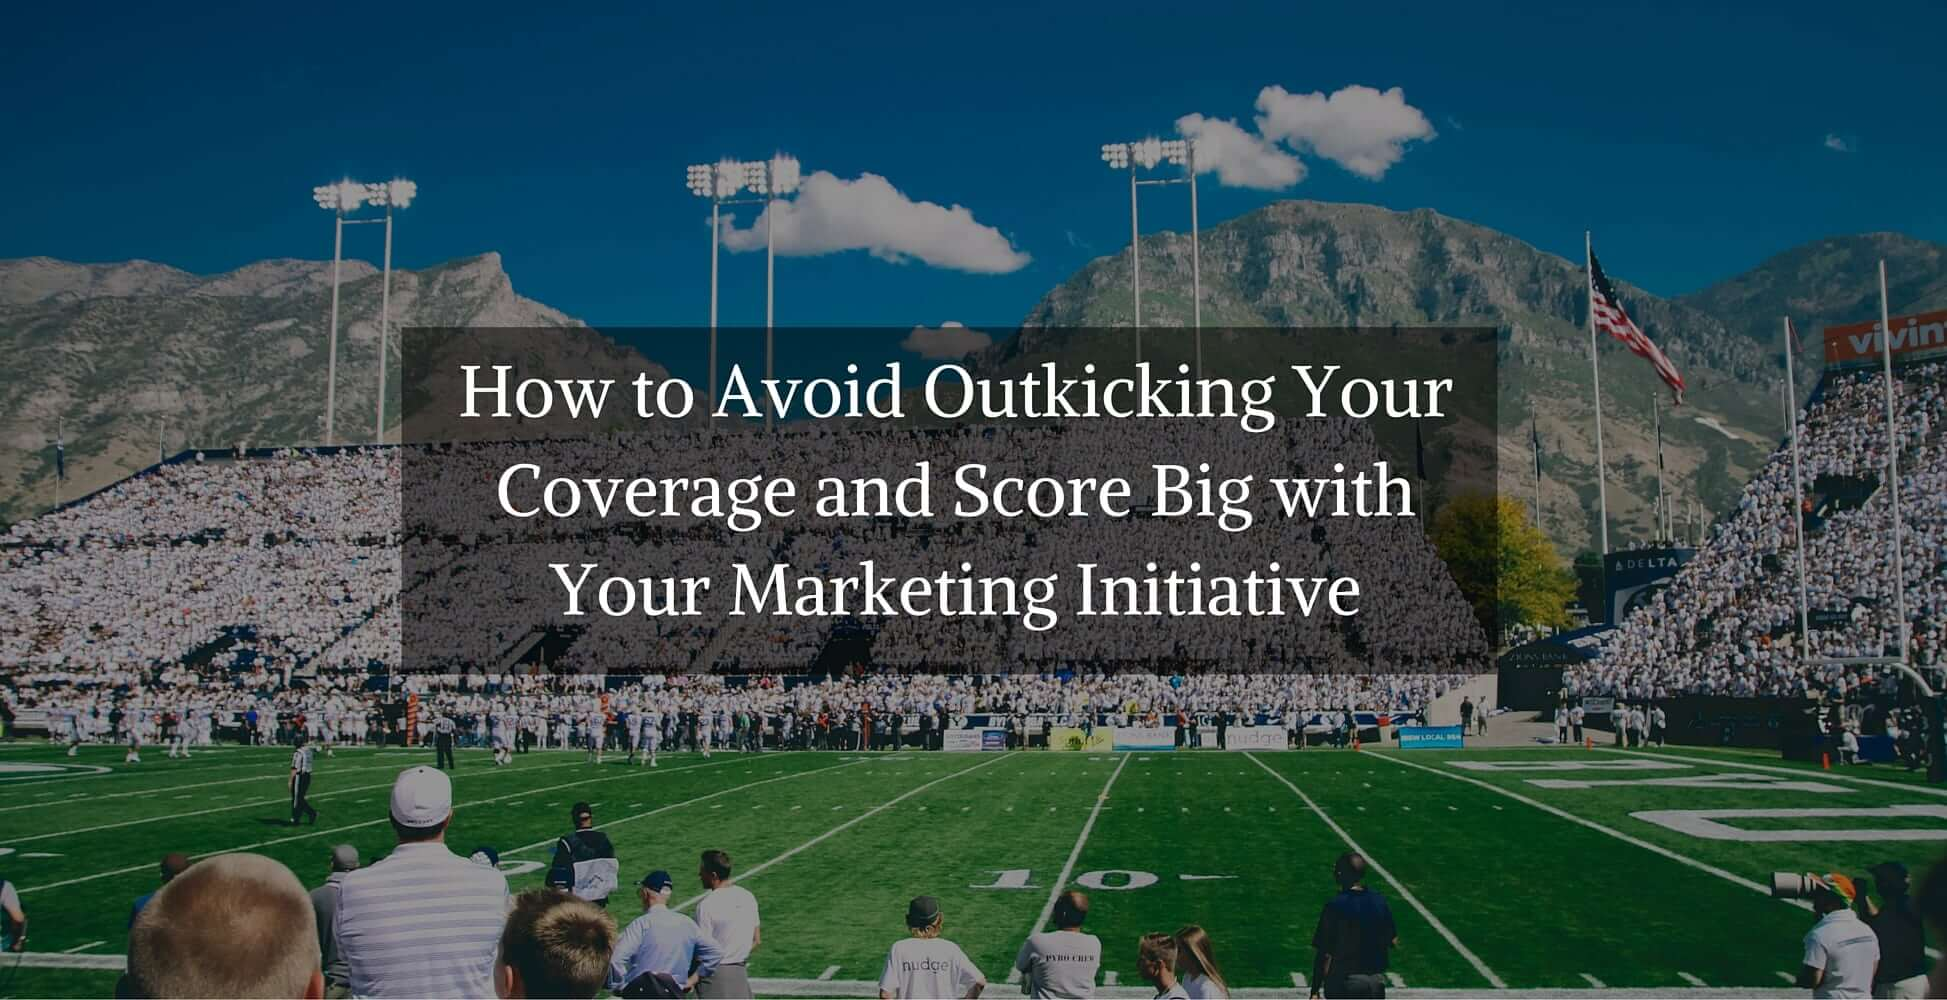 Outkicking your coverage dating